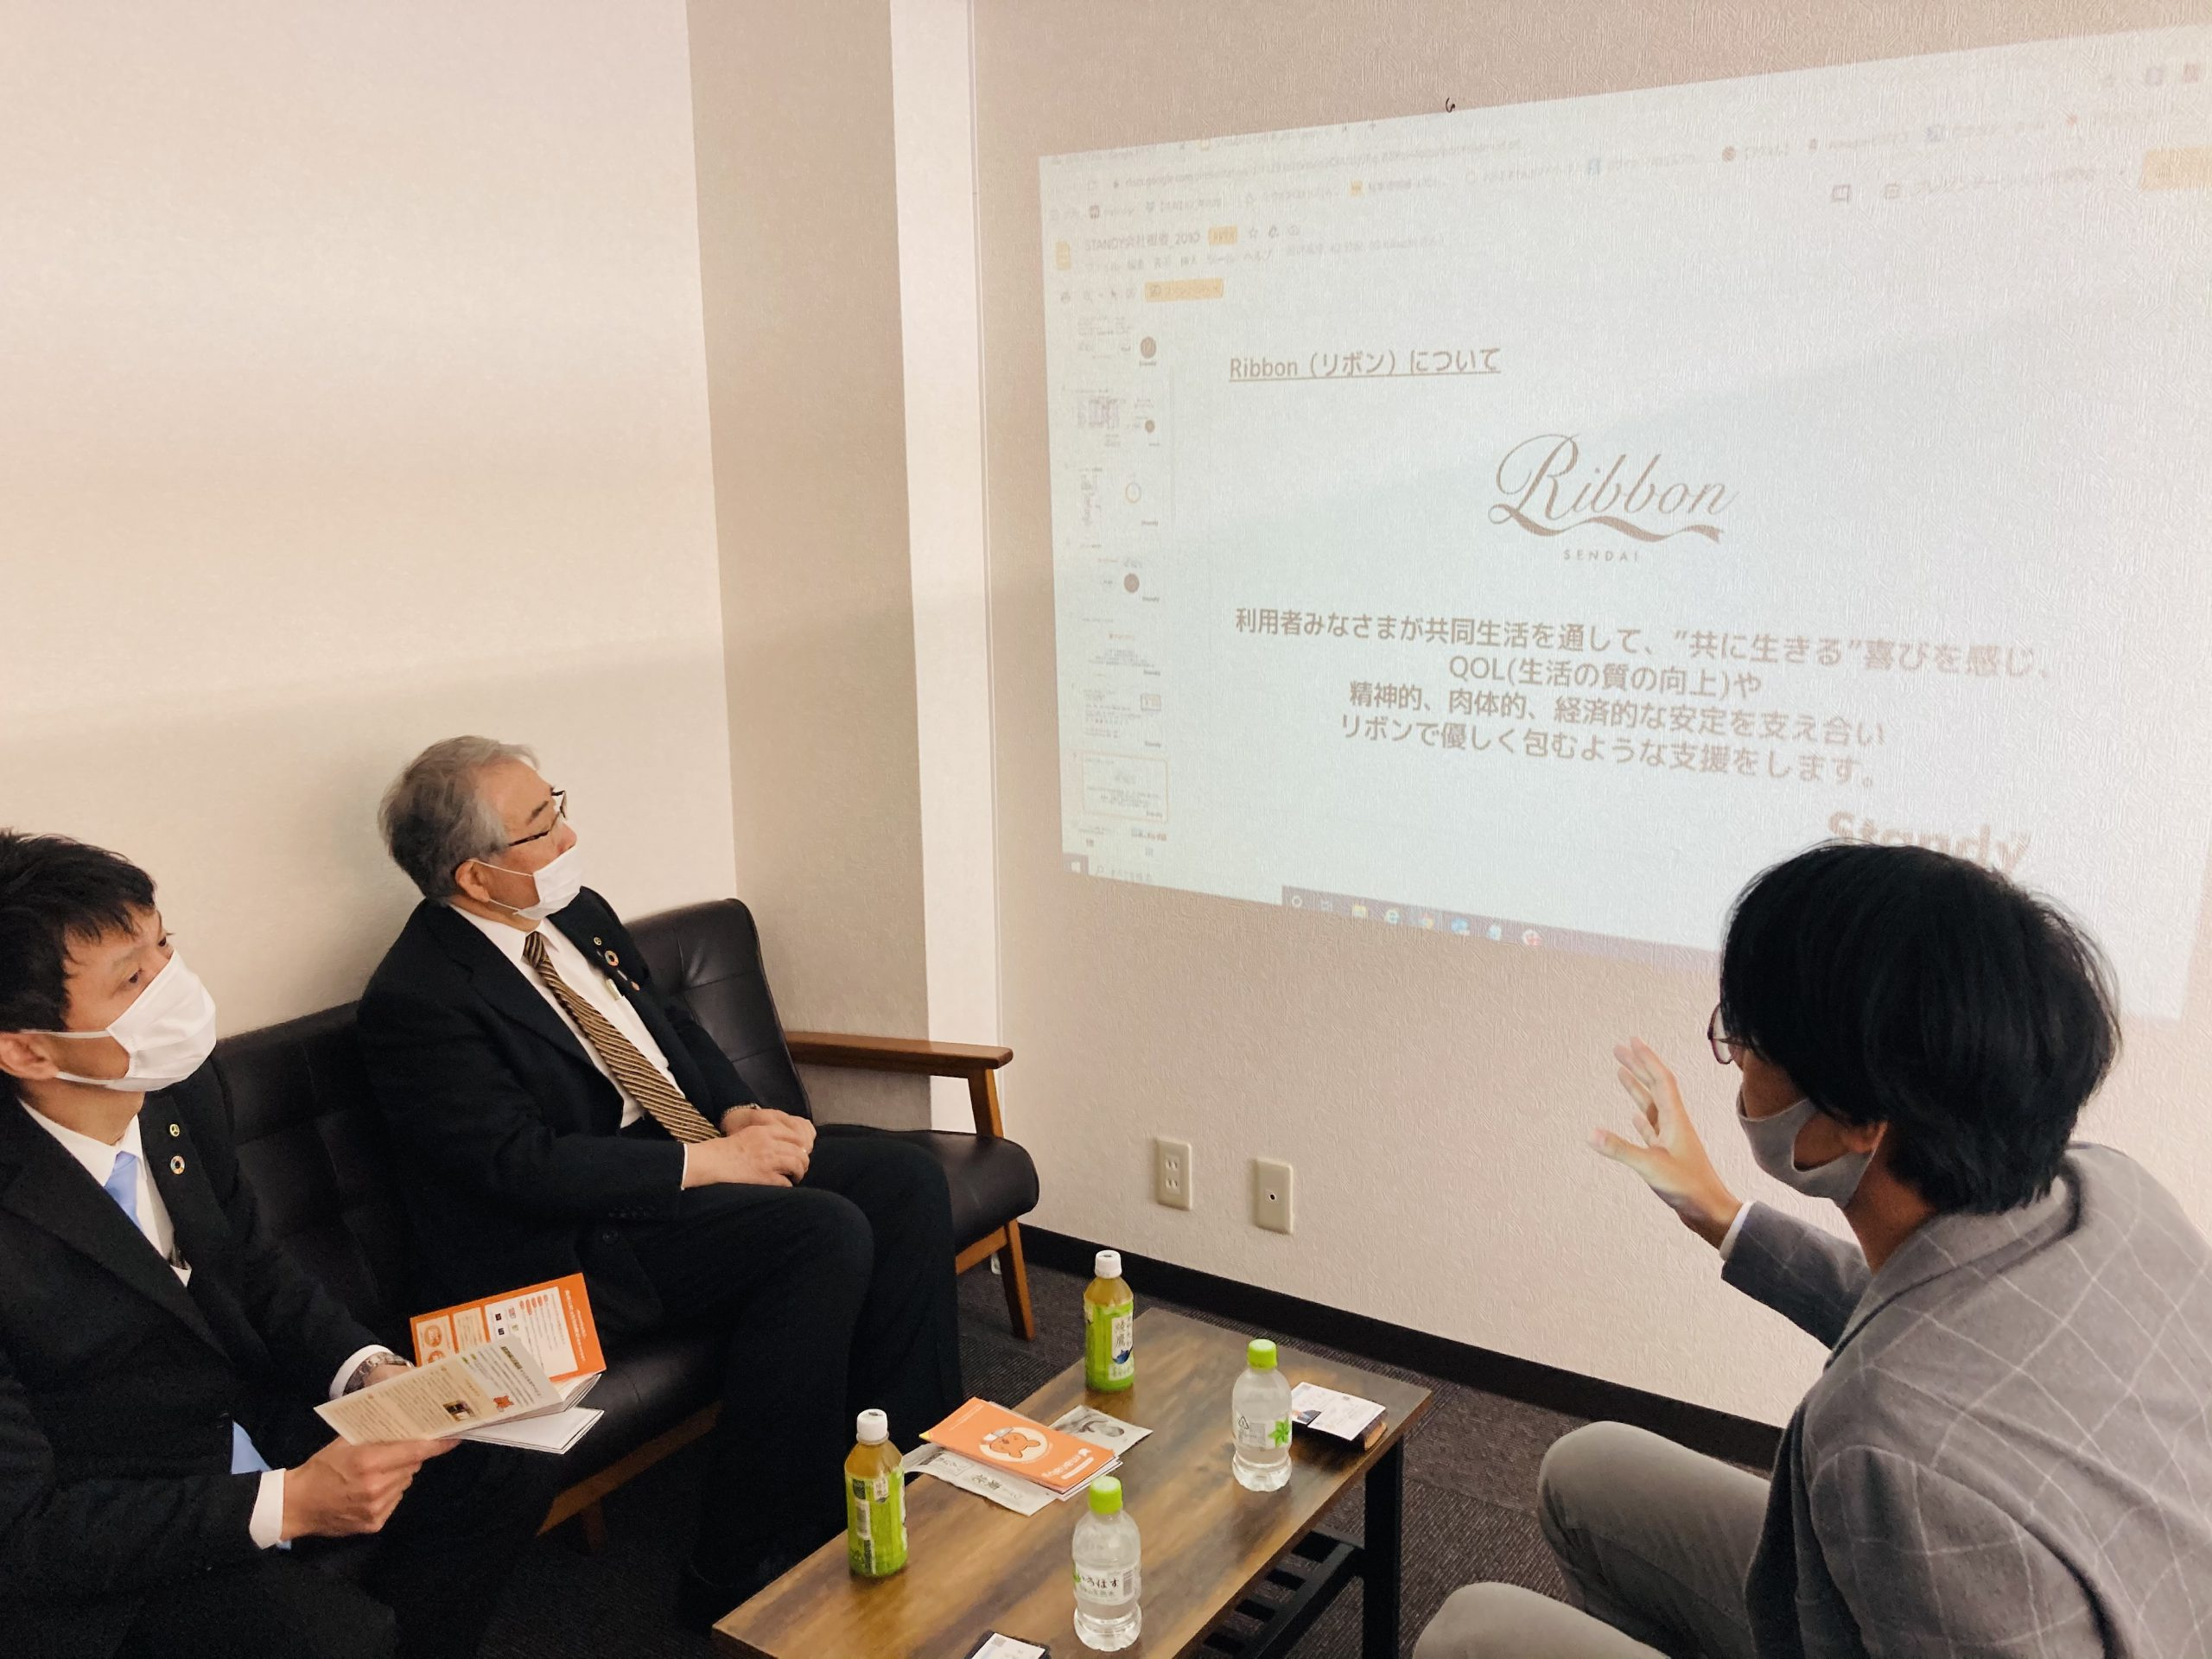 You are currently viewing [お知らせ]郡山市長が訪問されました